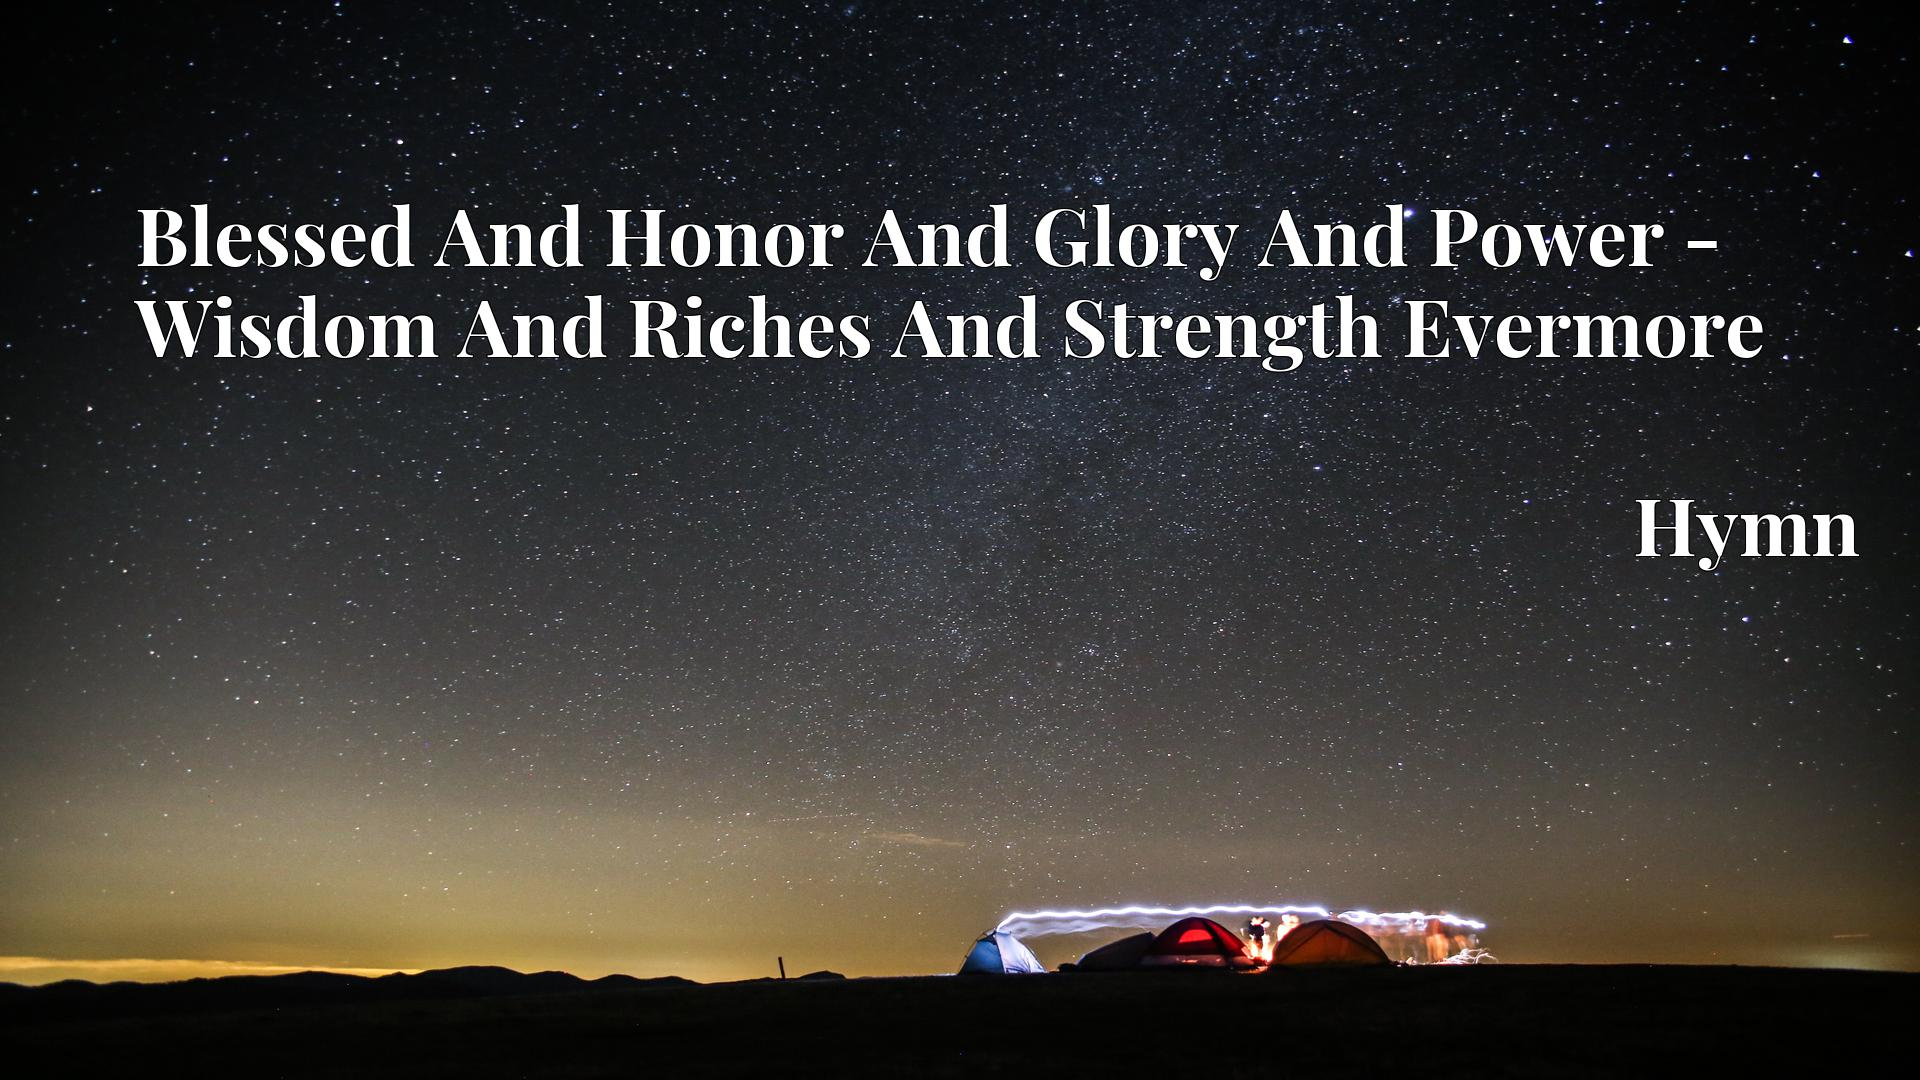 Blessed And Honor And Glory And Power - Wisdom And Riches And Strength Evermore Hymn